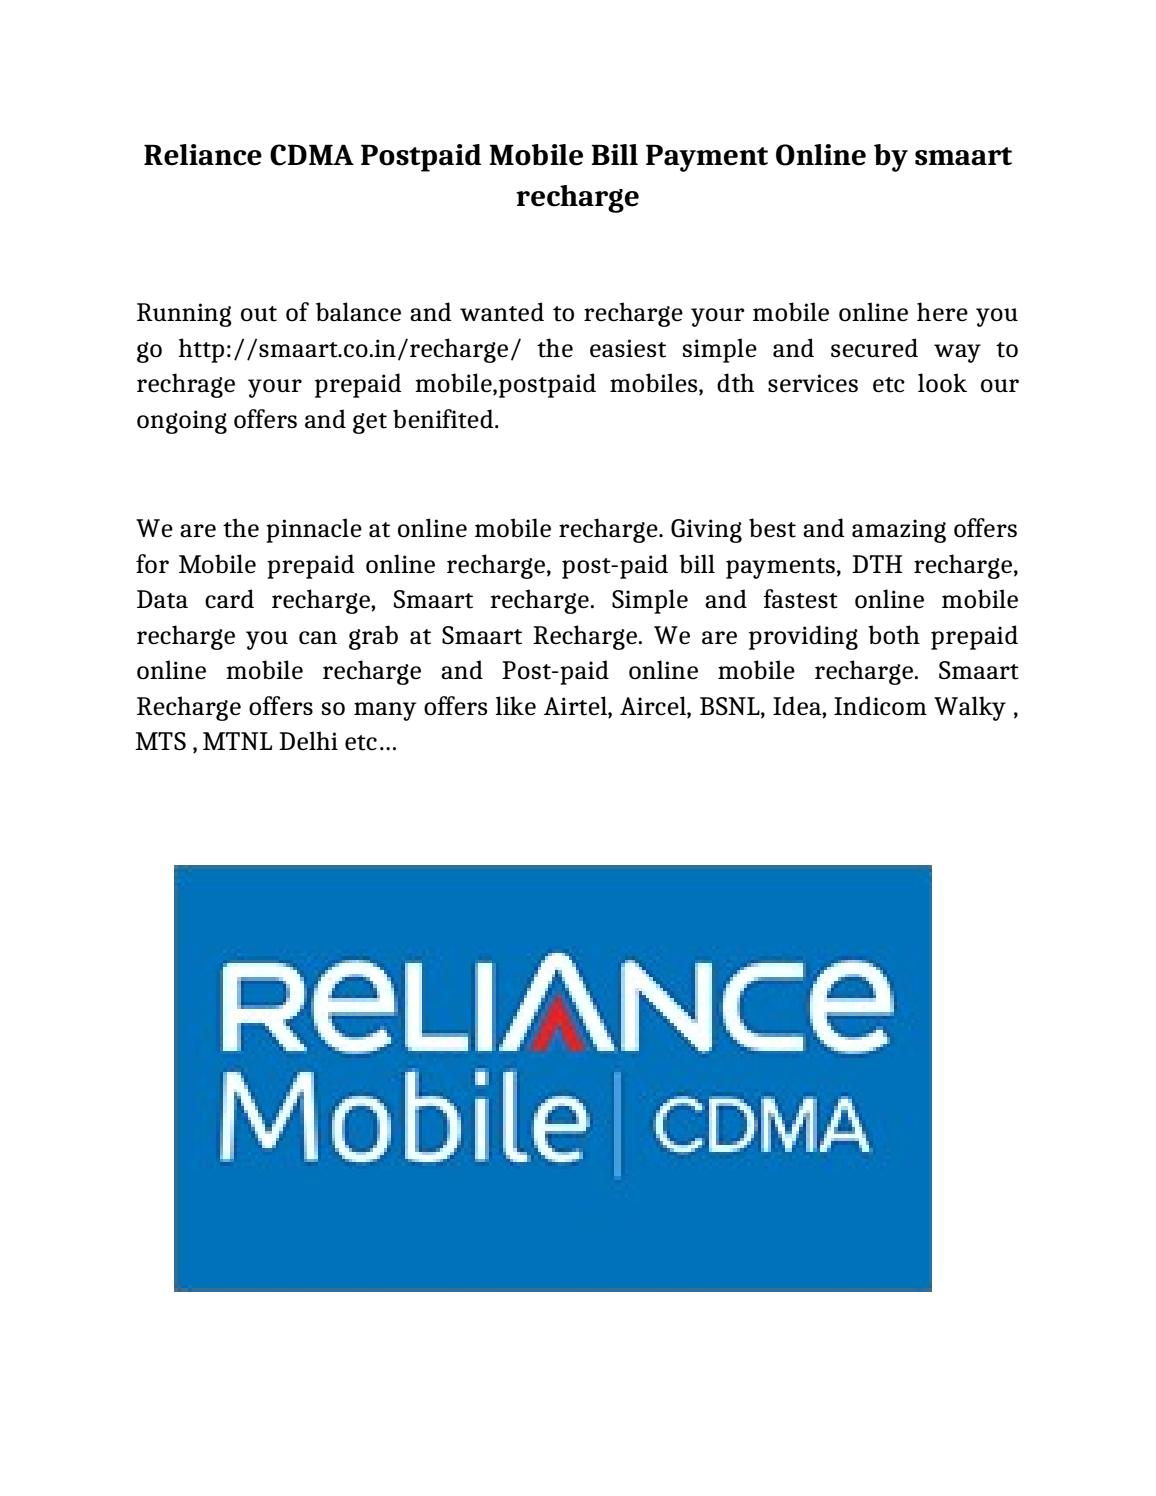 Reliance CDMA Postpaid Mobile Bill Payment Online by smaart